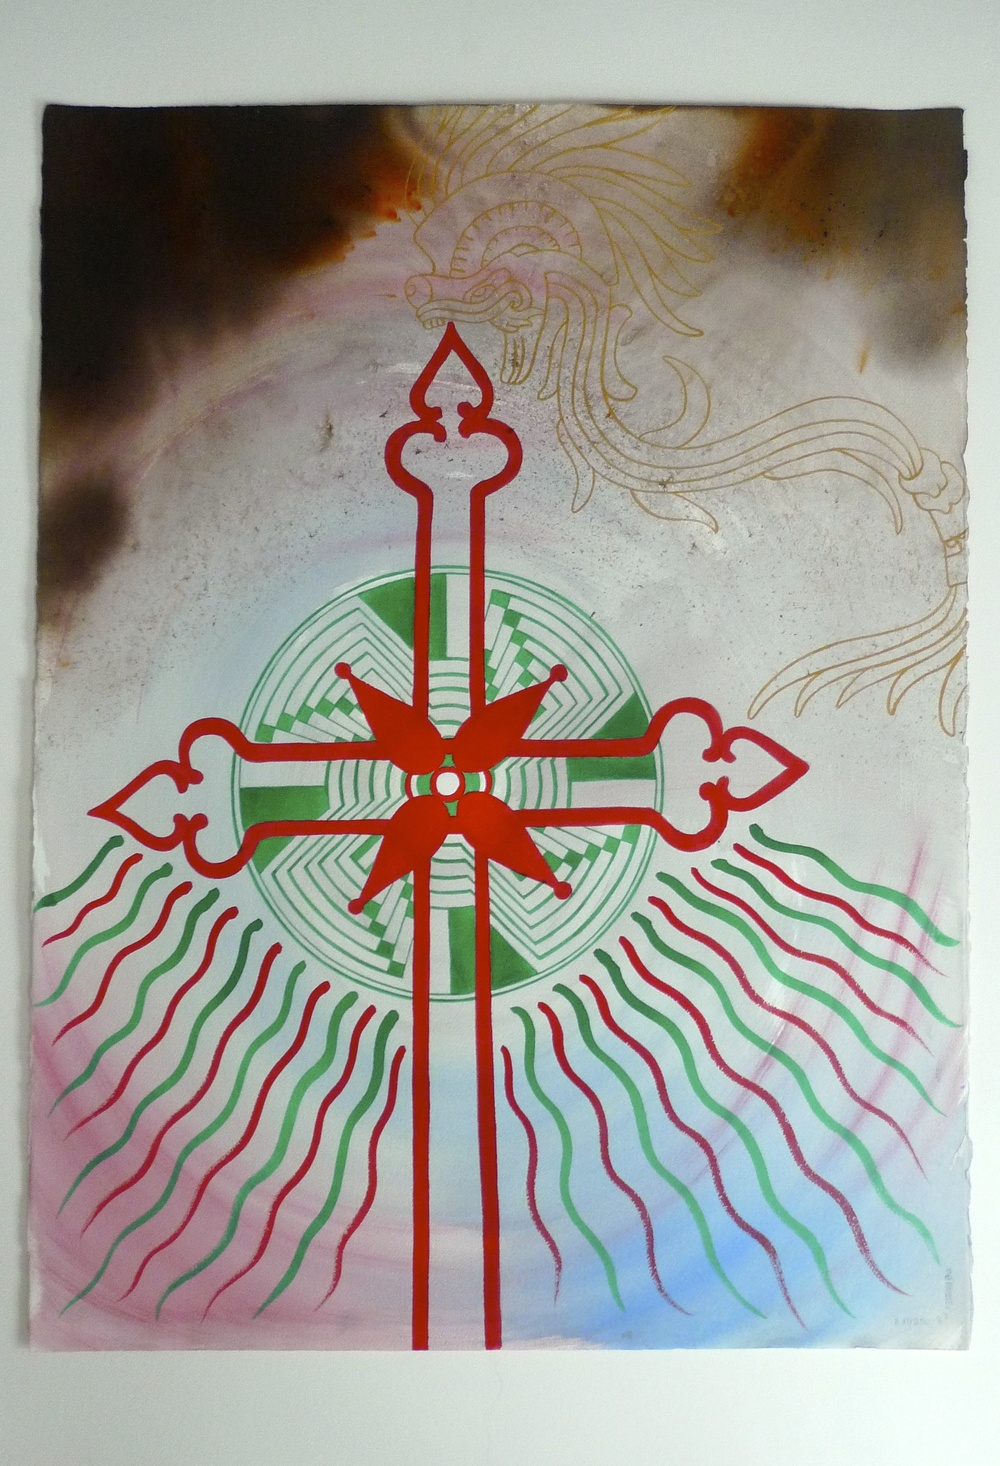 Mexico Ink / Gold Ink Arches Paper  2010  22 x 30""